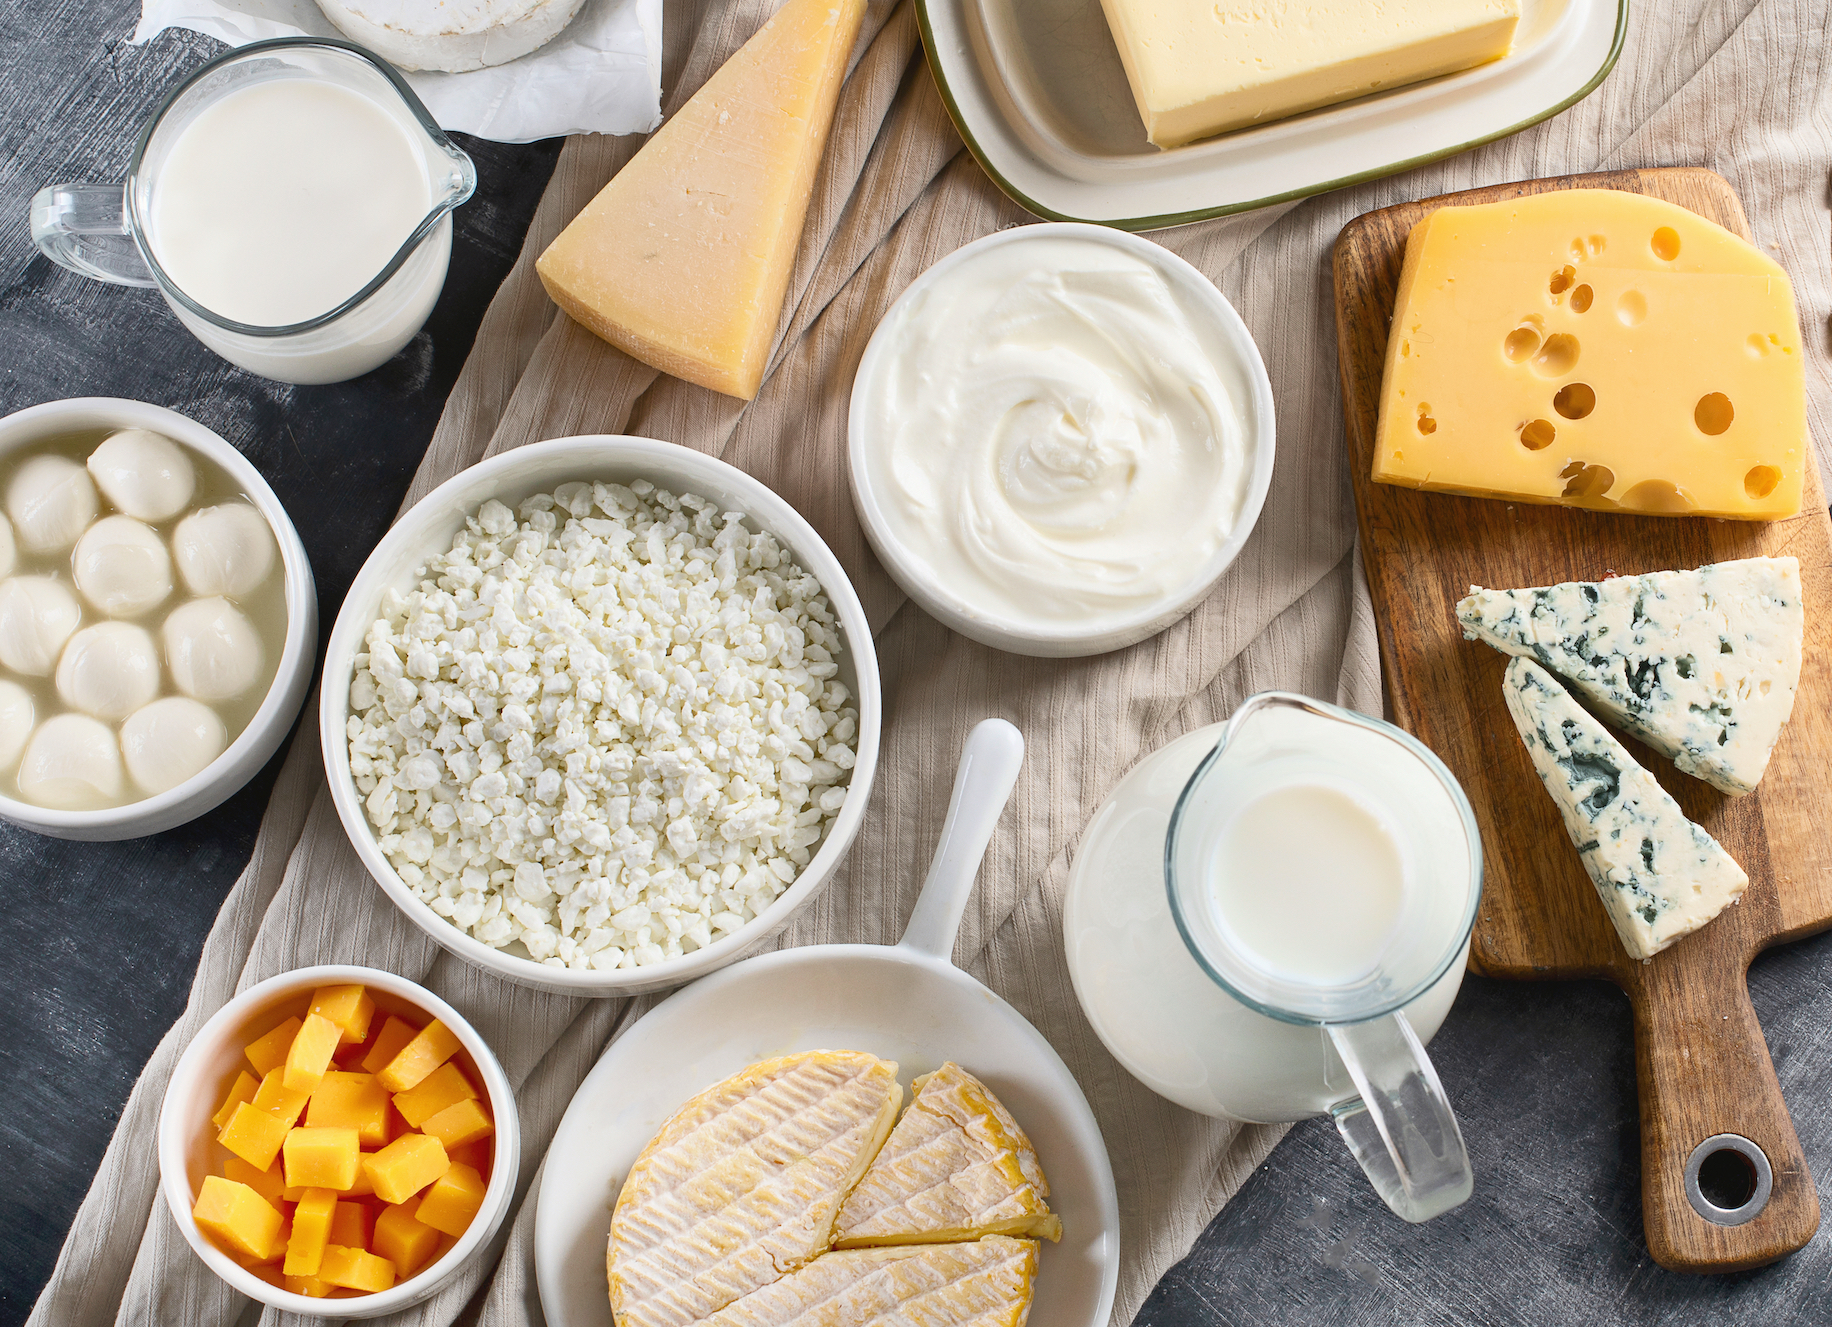 A variety of dairy foods including milk, yogurt and various cheeses including cheddar, swiss, blue cheese, mozzarella, brie